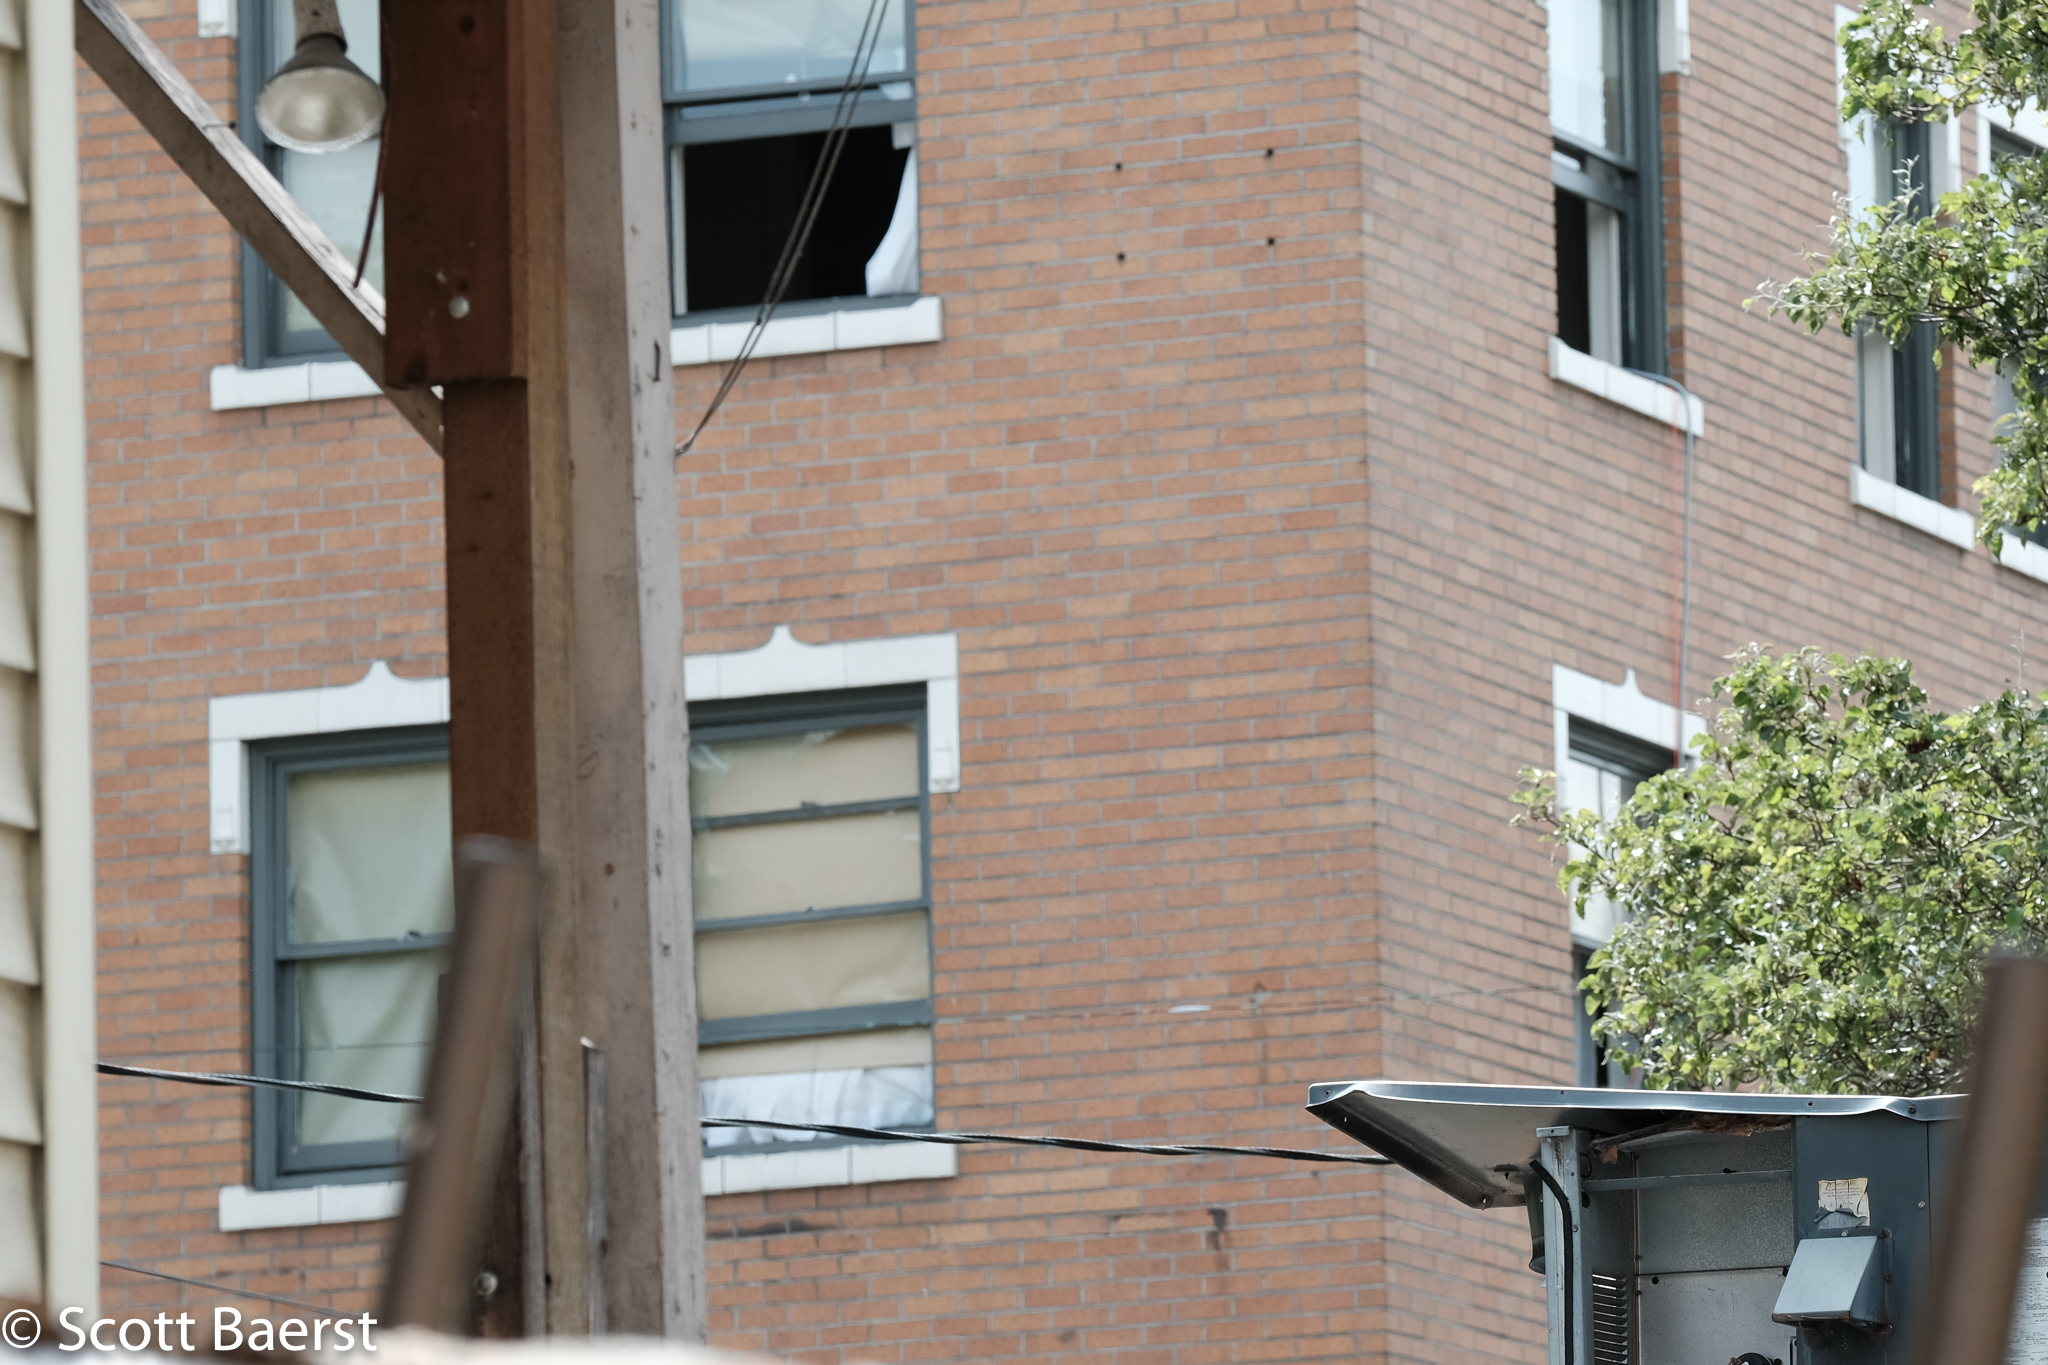 Apartment where a suspect in a domestic violence incident barricaded himself on 30 May 2018. Granada apartments, Capitol Hill, Seattle.